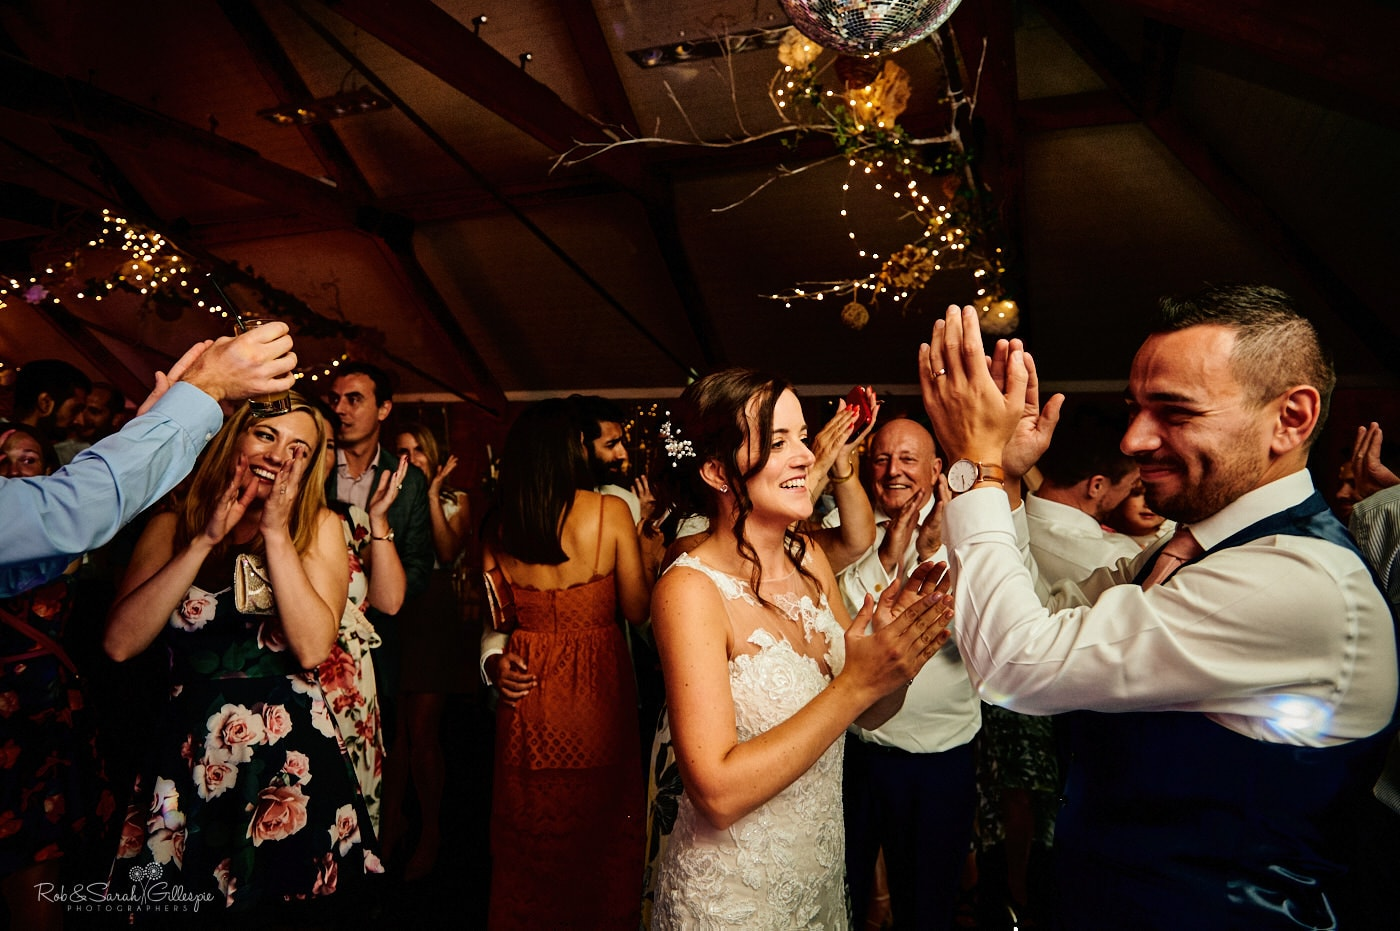 Wedding guests clap for live band during party